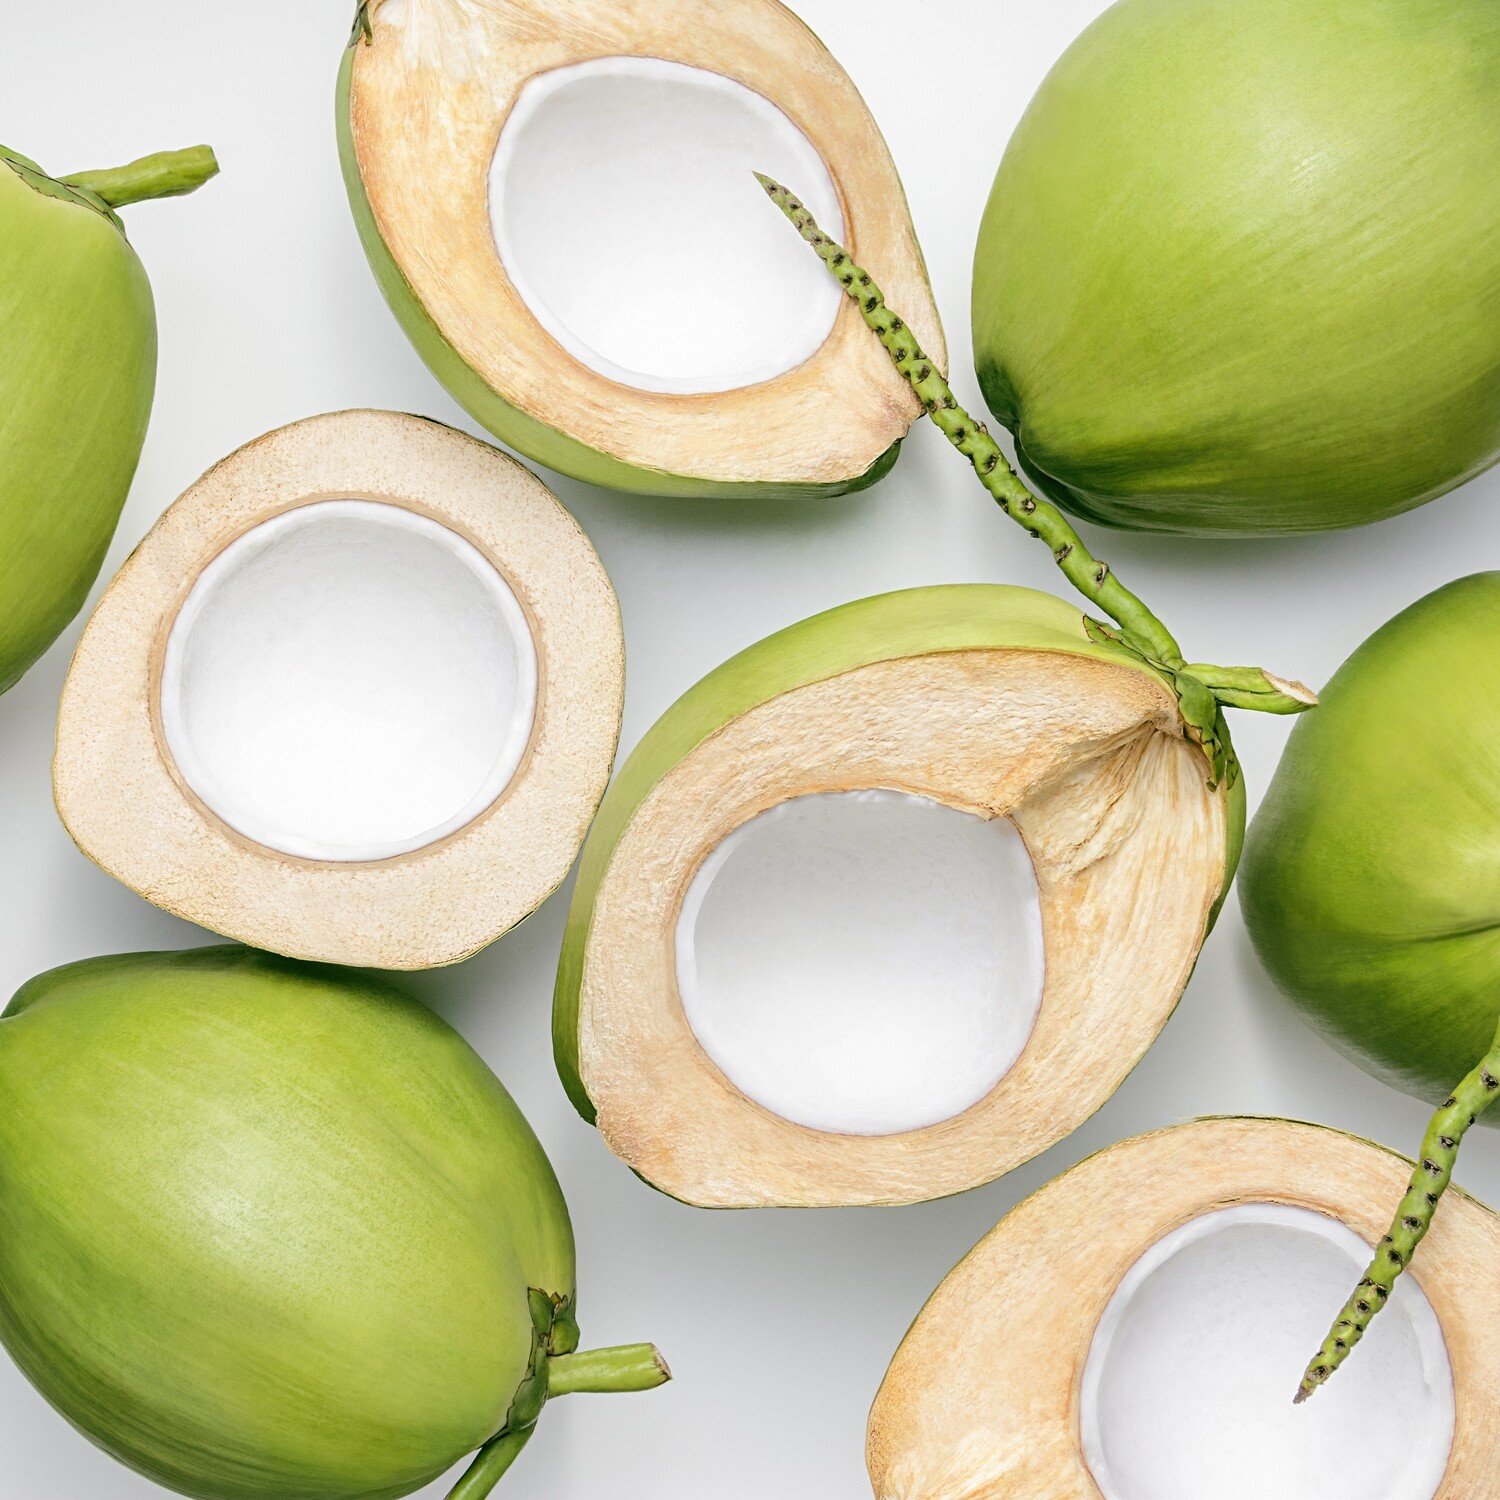 Fresh Coconut - Green, Young, Organic, Coco - Box of 4